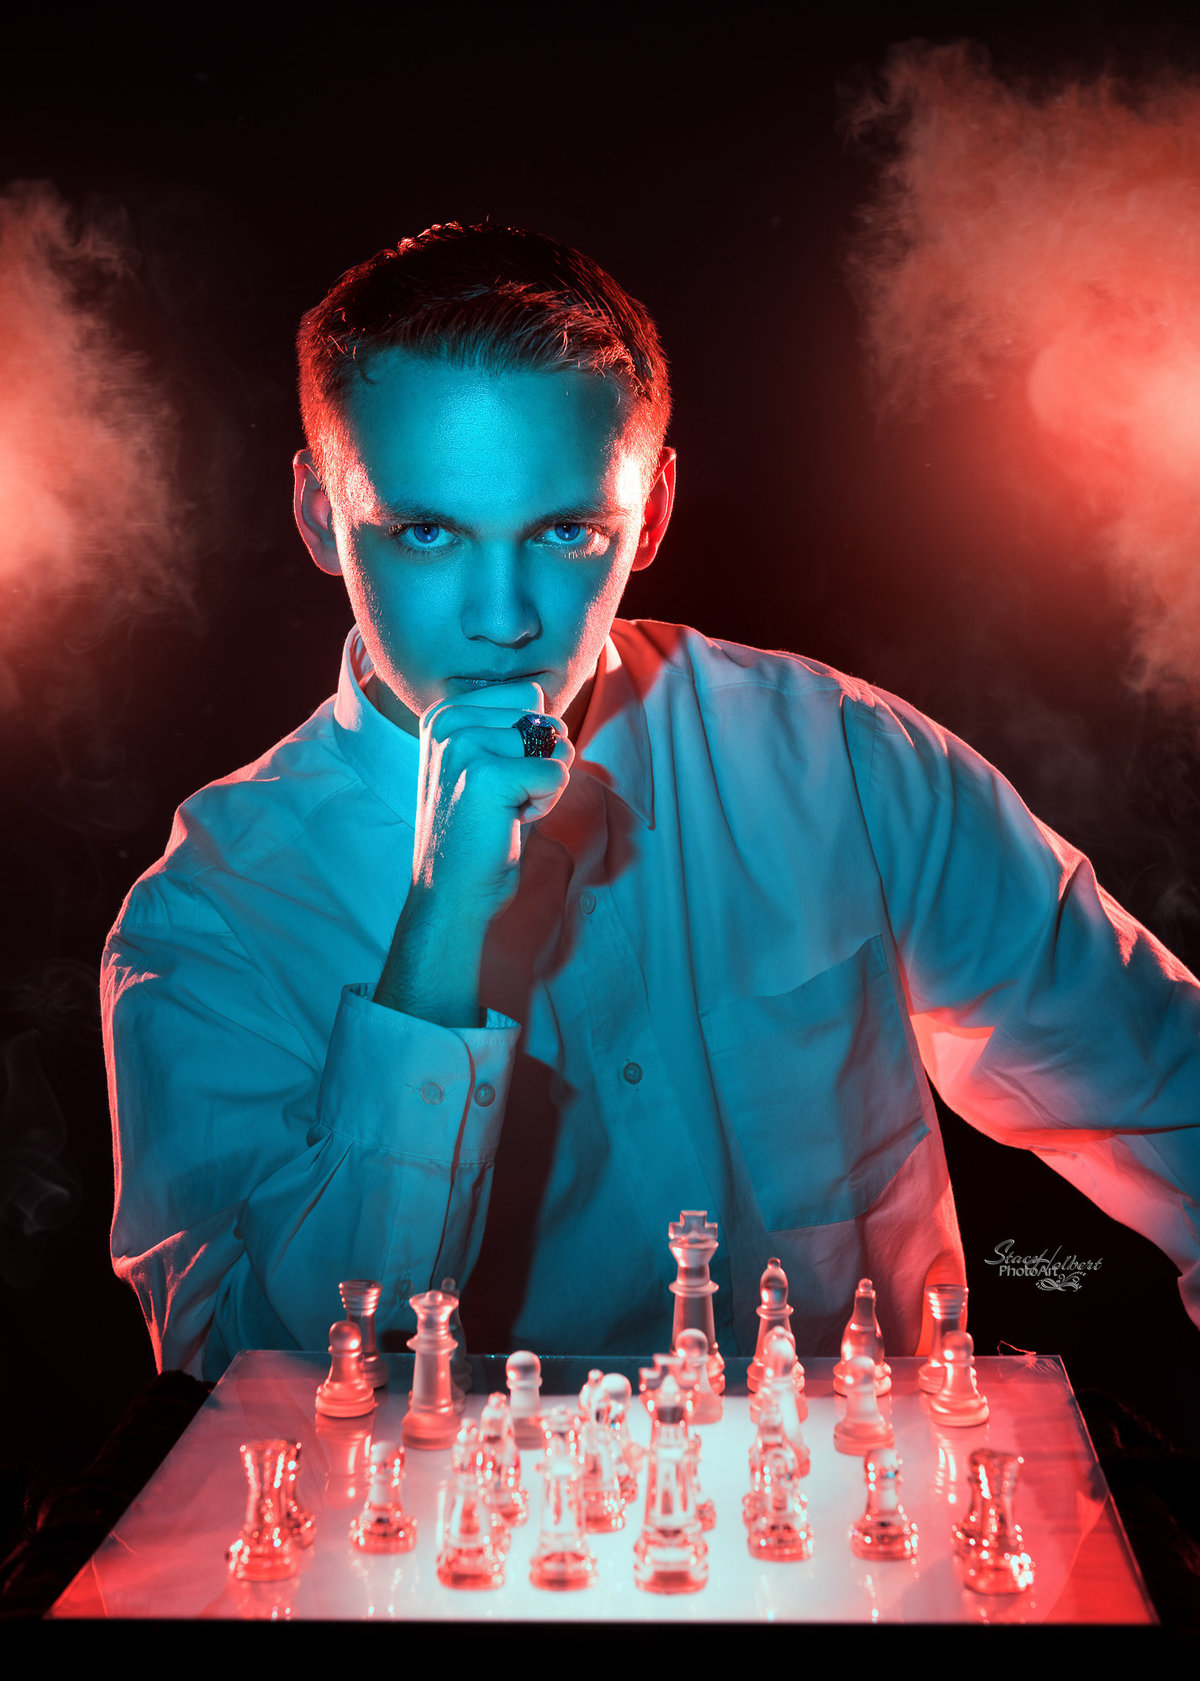 Senior Boy Chess Portrait with Colored Gel Lighting. Photo by Stacy Holbert, Booneville AR